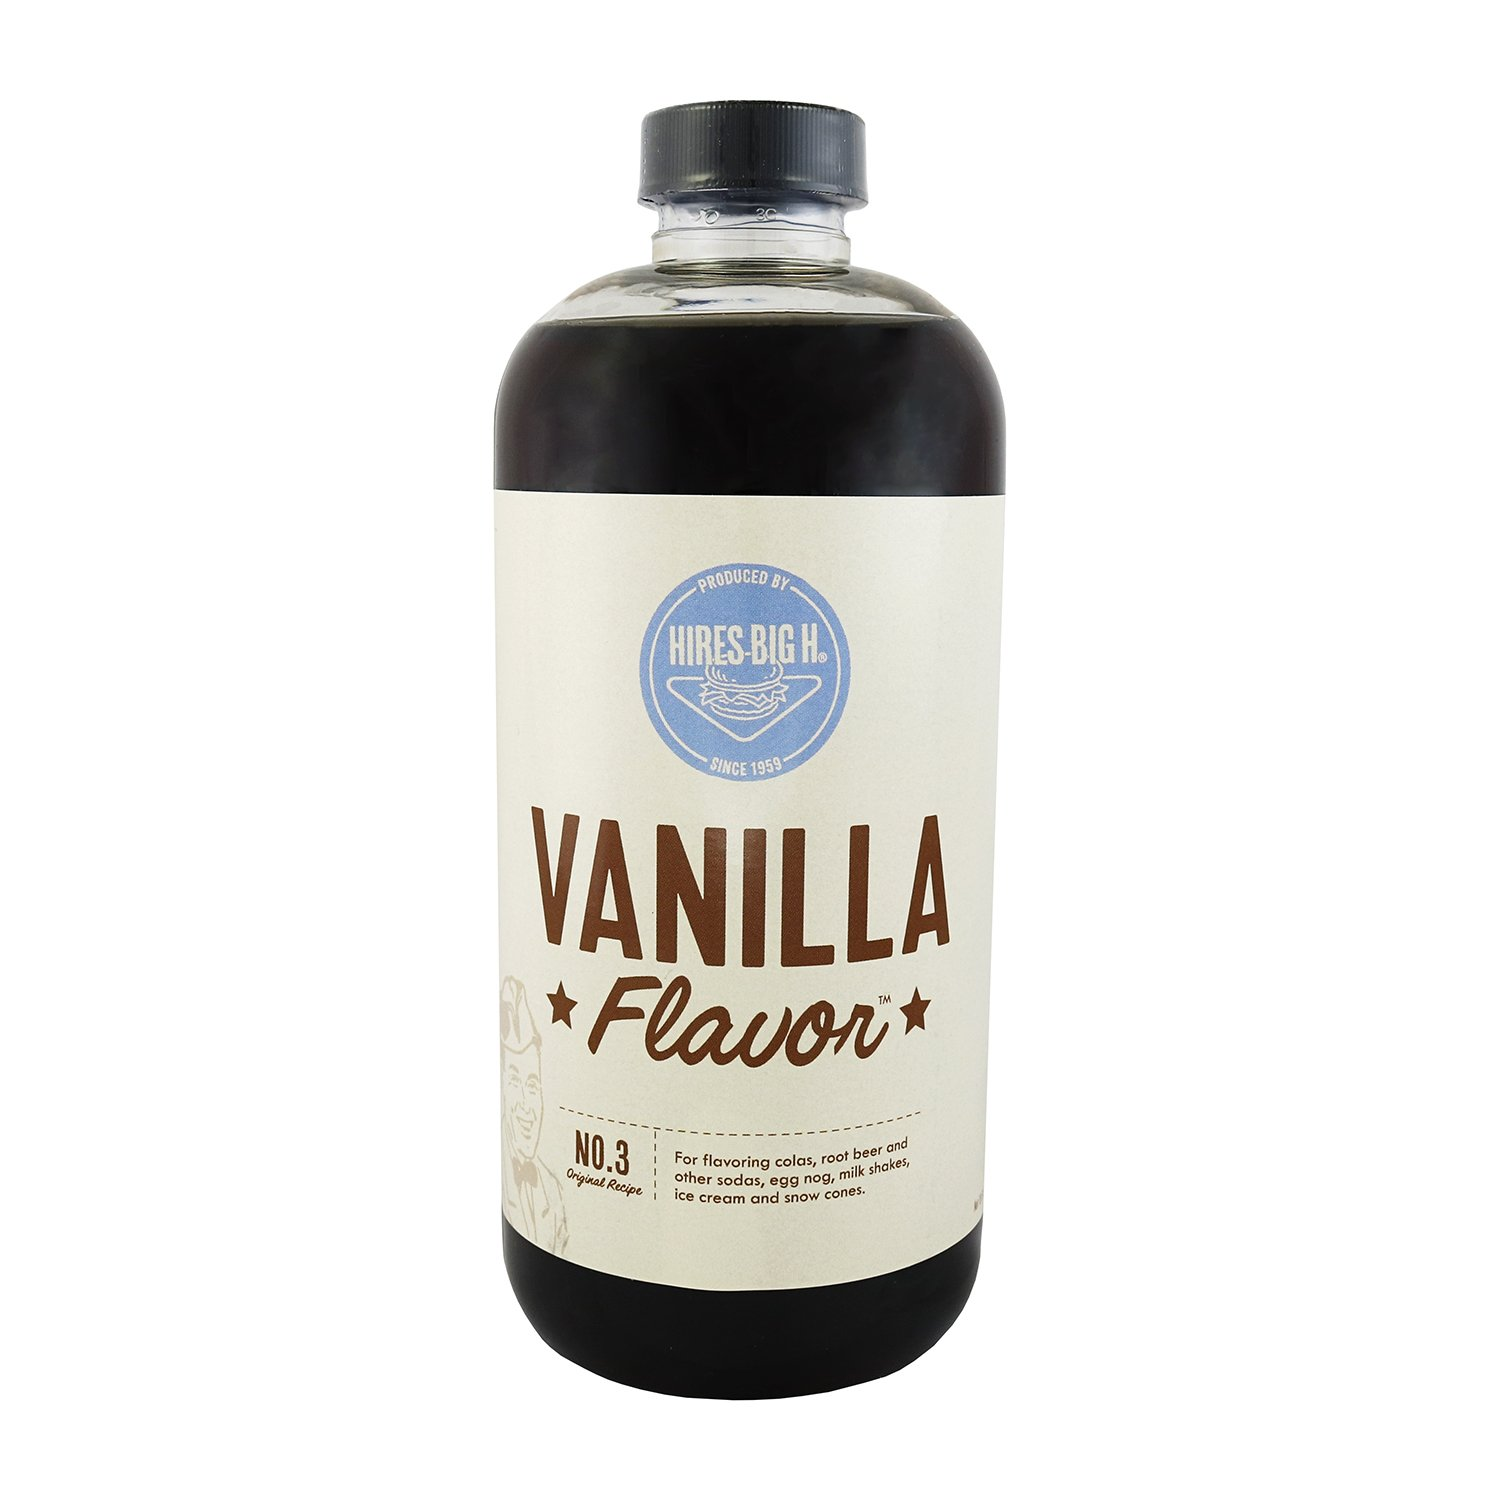 Hires Big H Vanilla Syrup, Great for Soda Flavoring 18 oz - 1 Pack